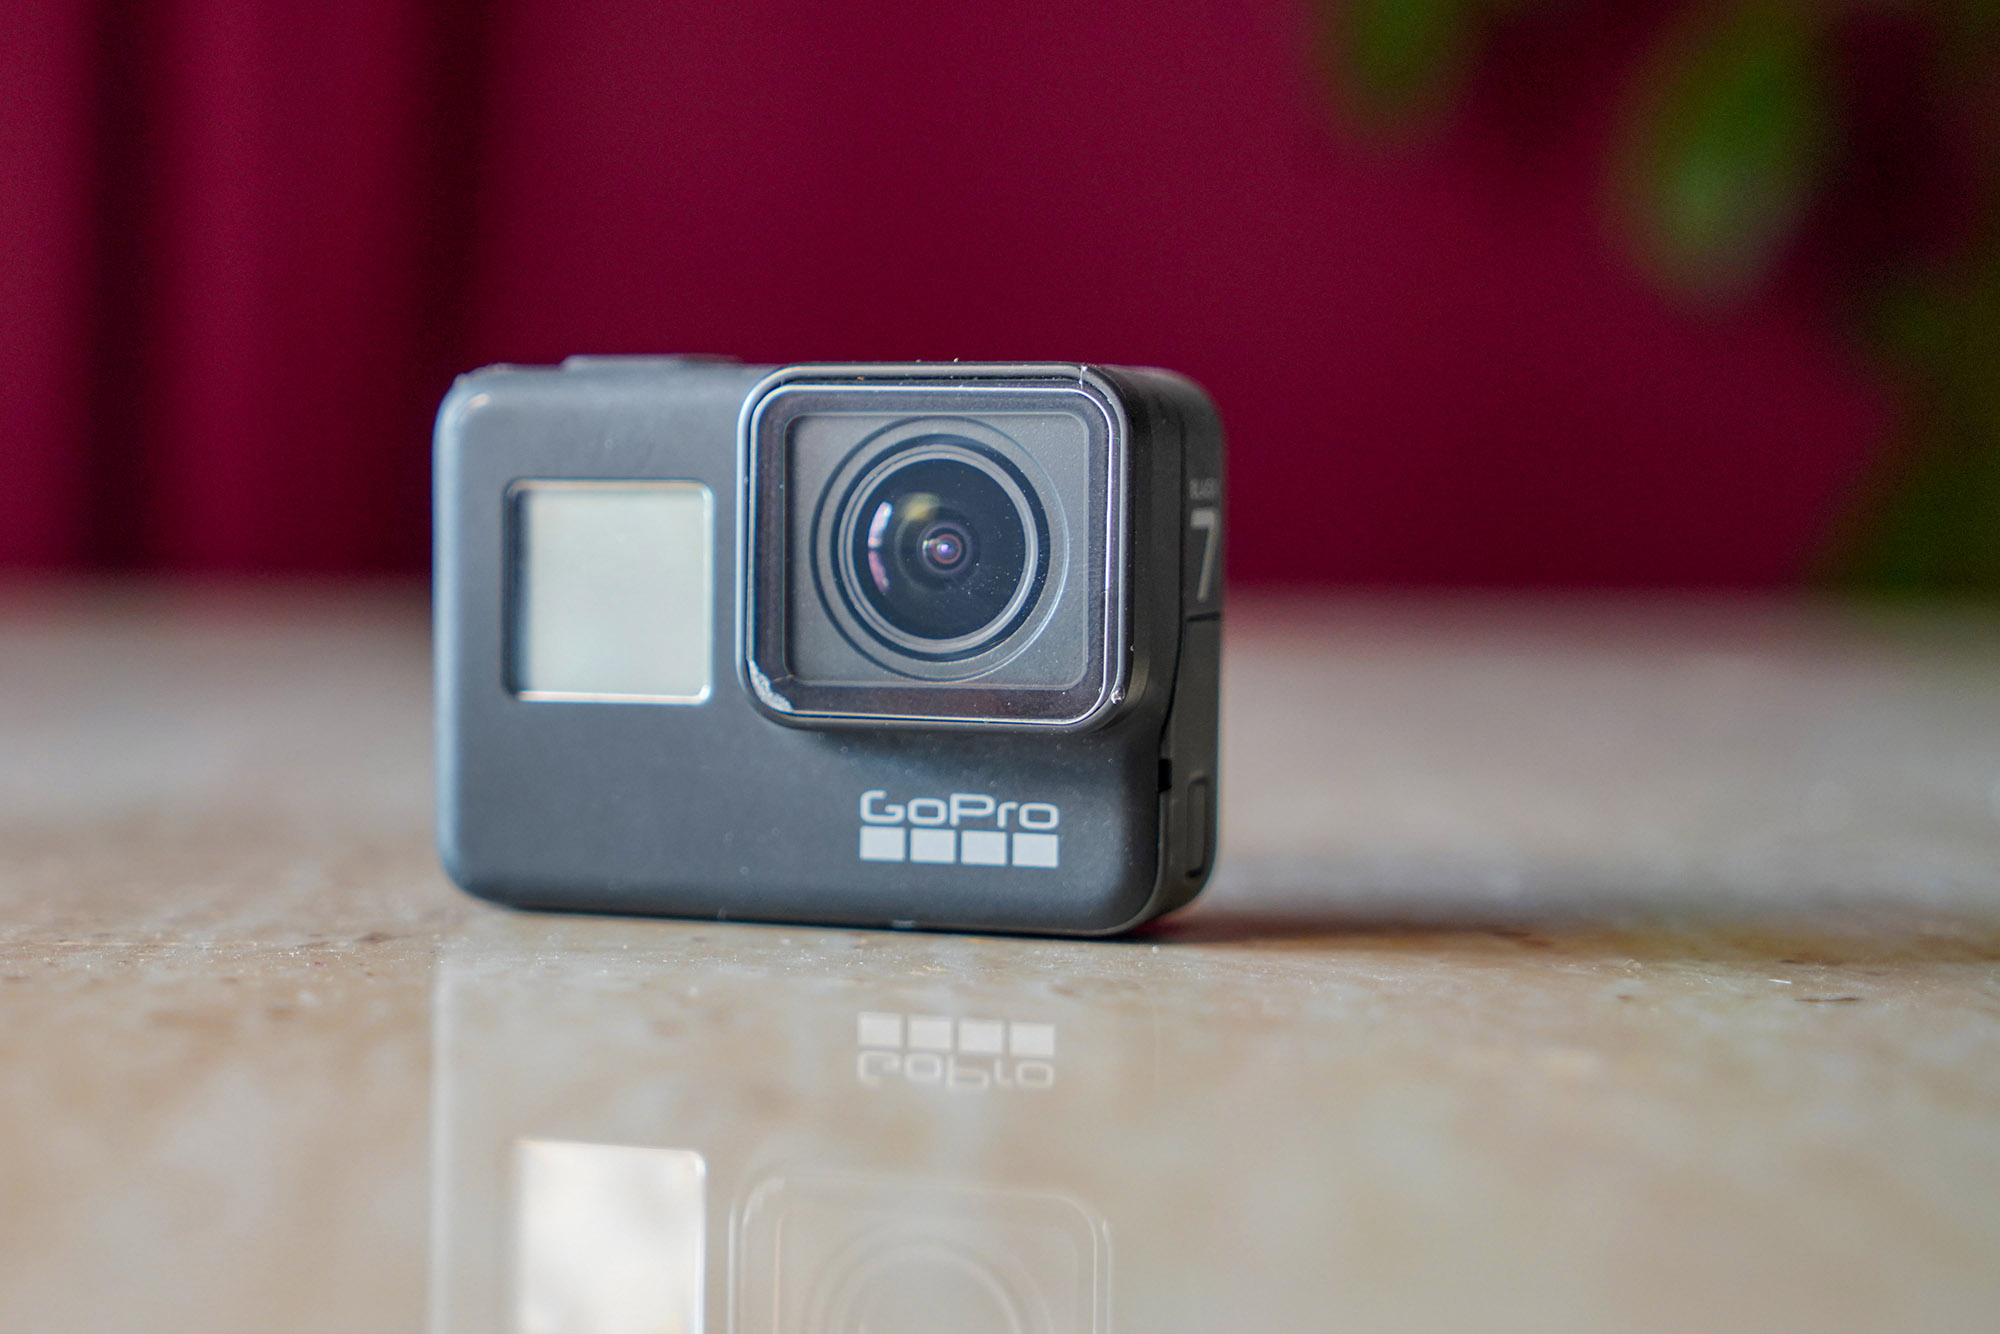 GoPro Hero 7 Black Review – 5 Things I Love and Dislike About this Camera